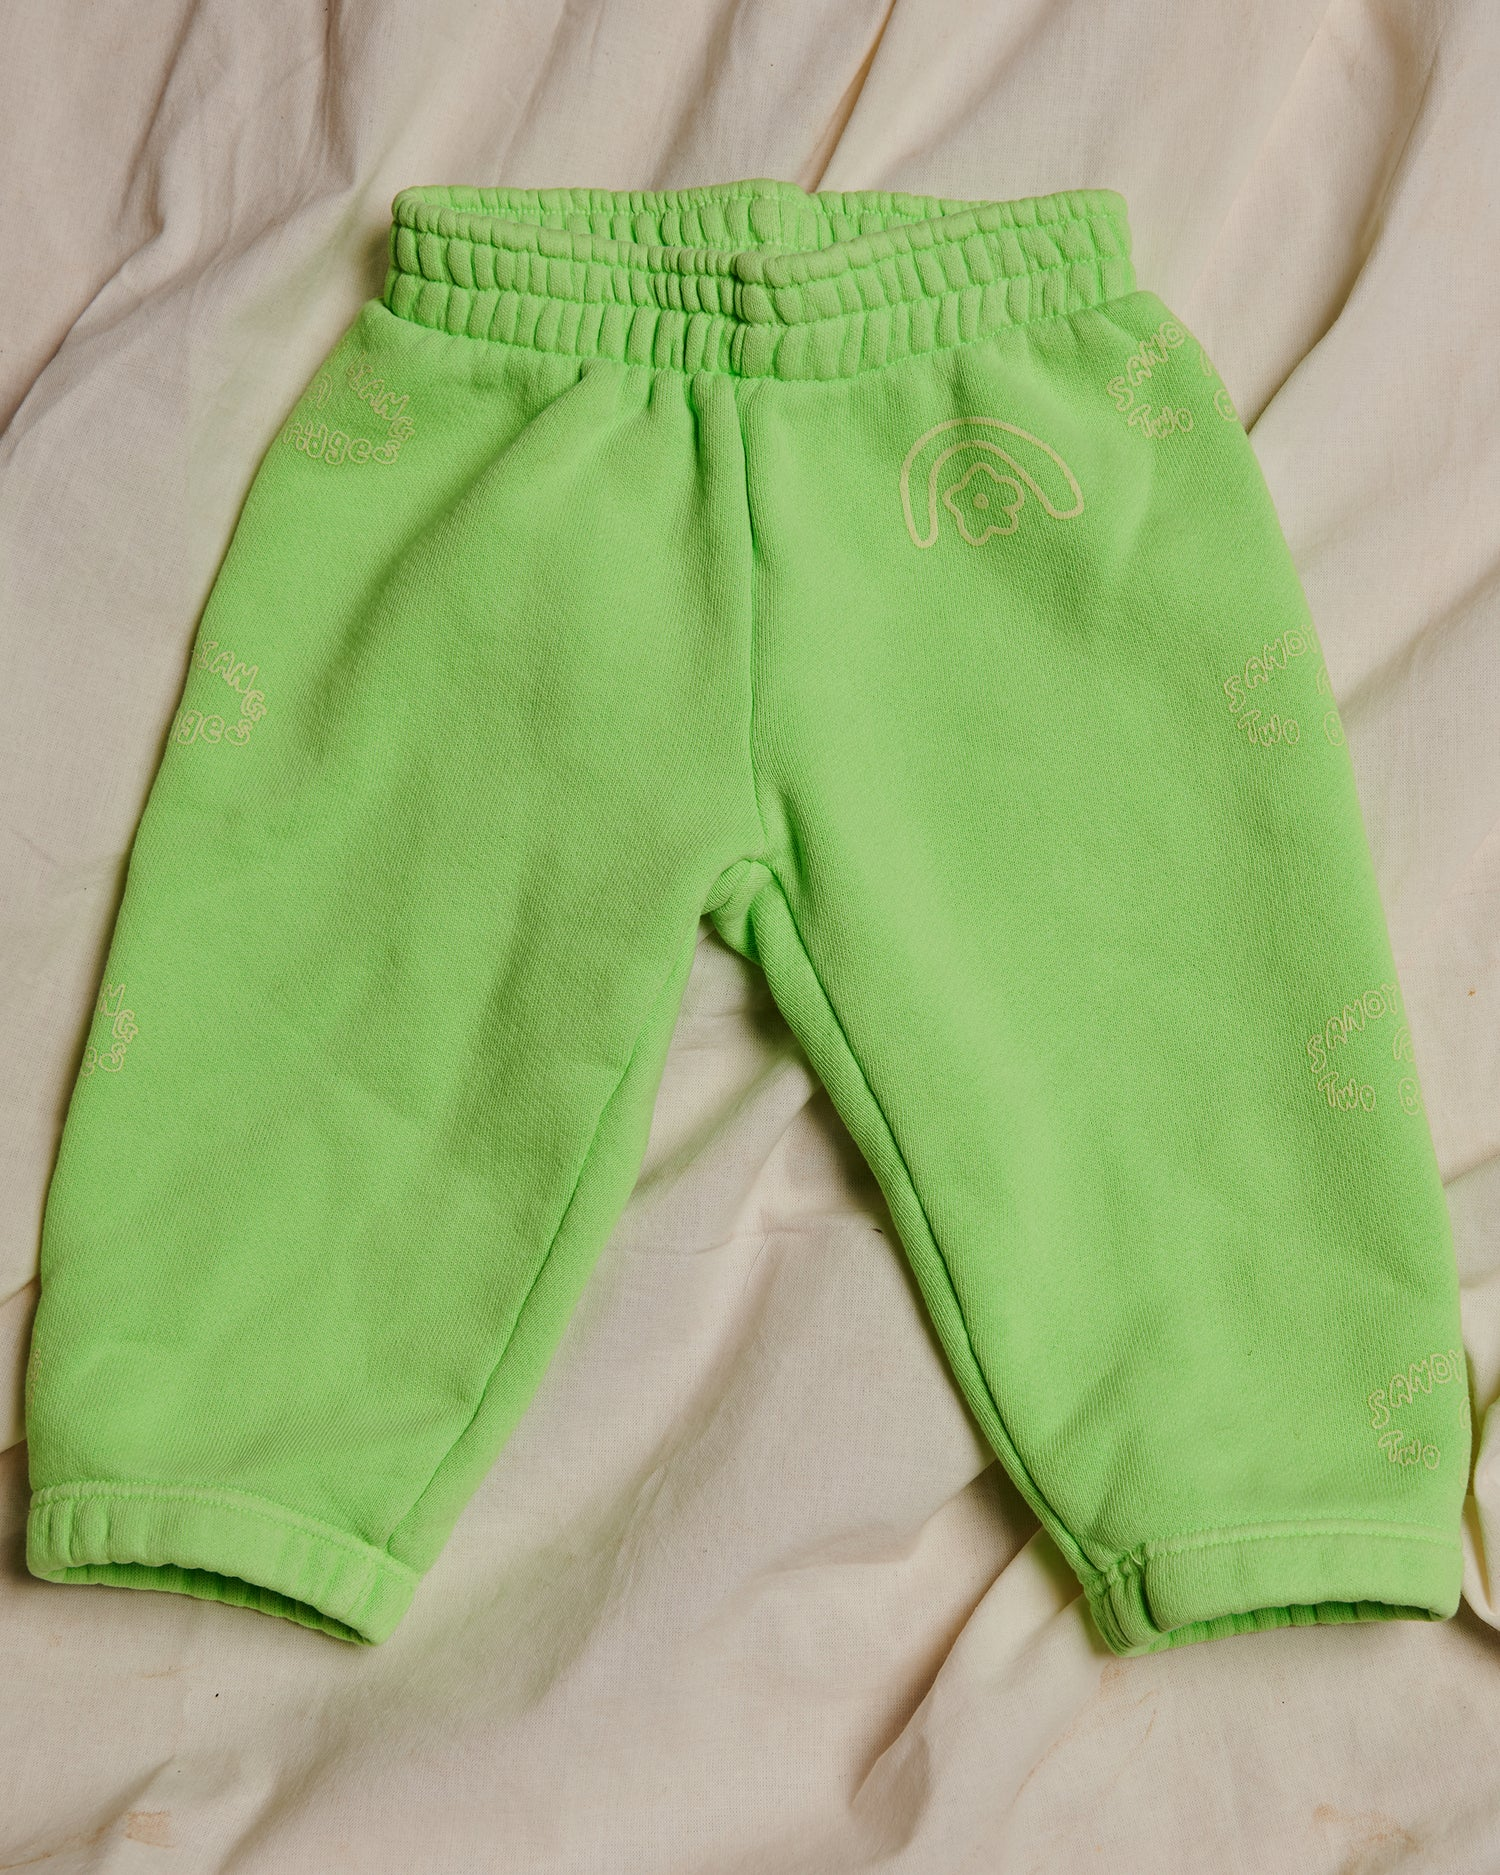 Sandy Liang x Two Bridges Neon Green Sweatpants